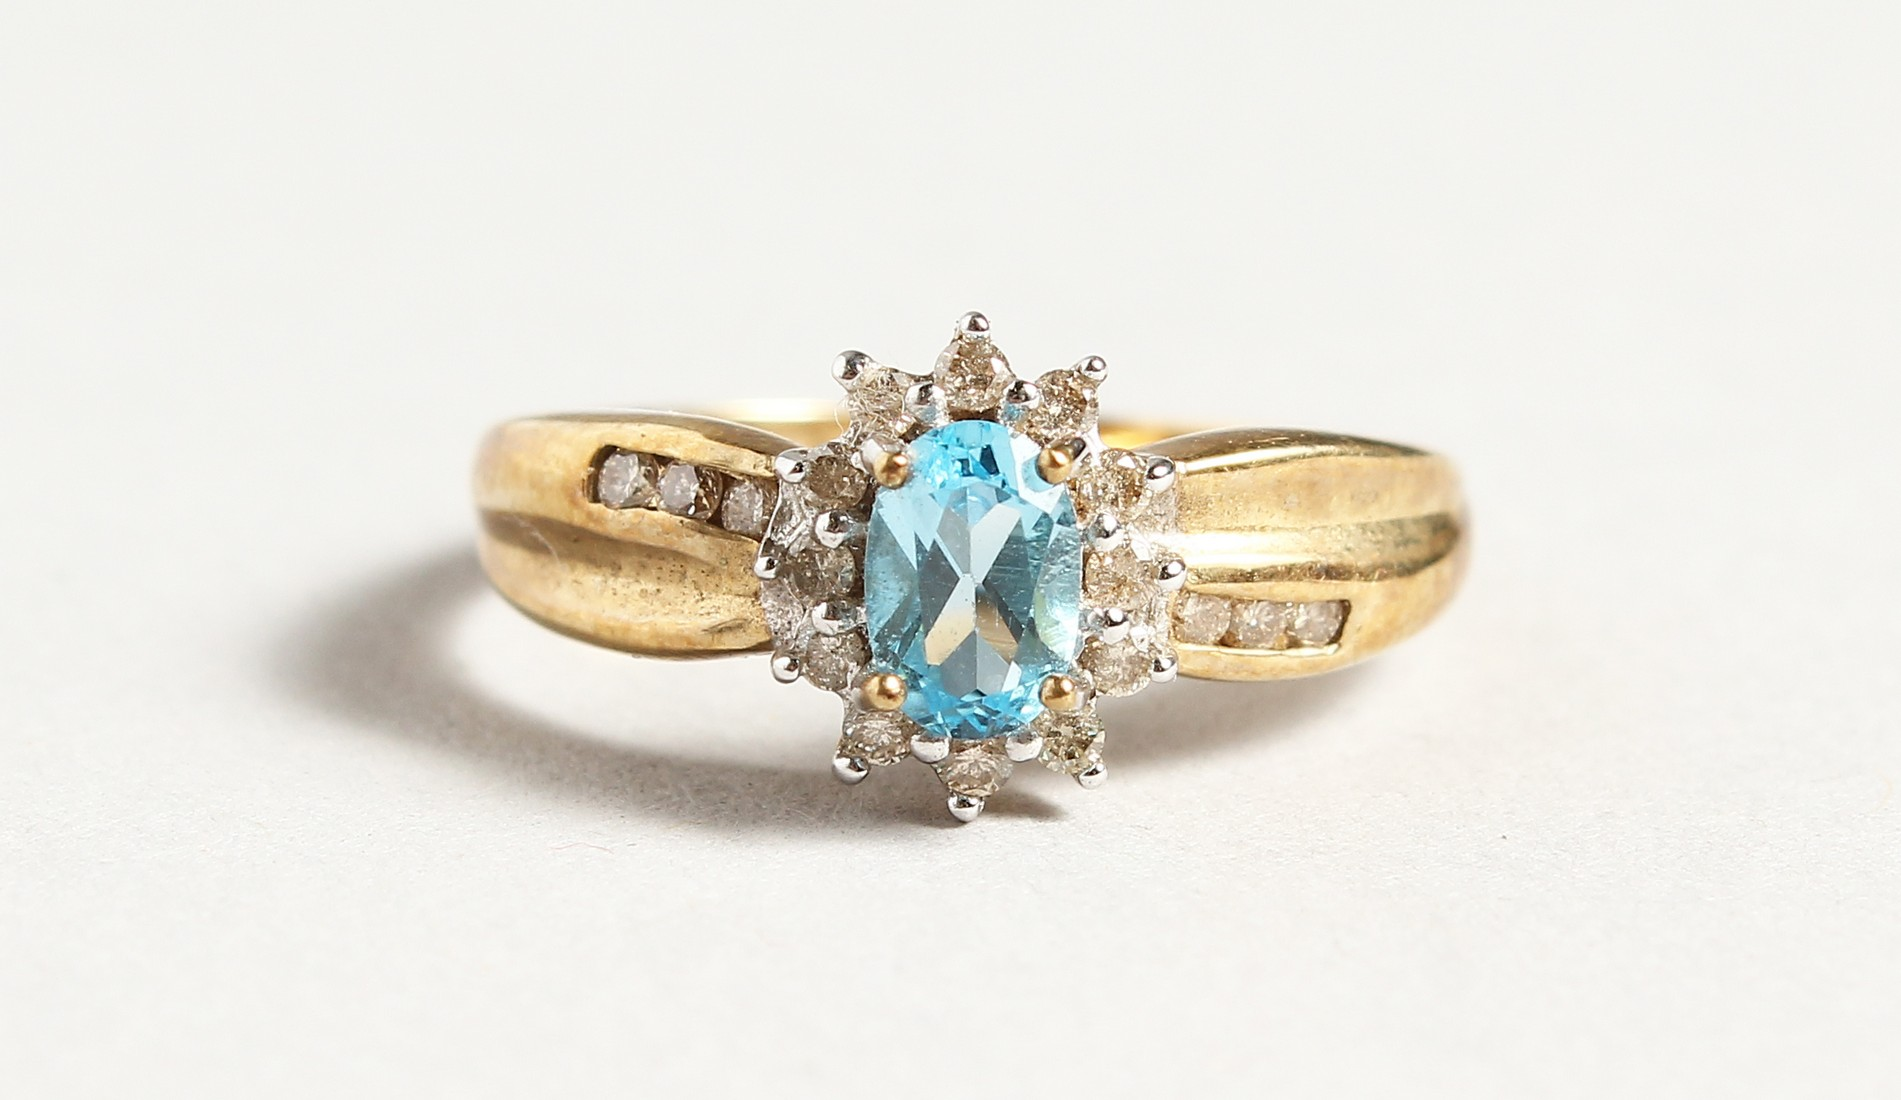 A 9CT GOLD BLUE TOPAZ AND DIAMOND CLUSTER RING